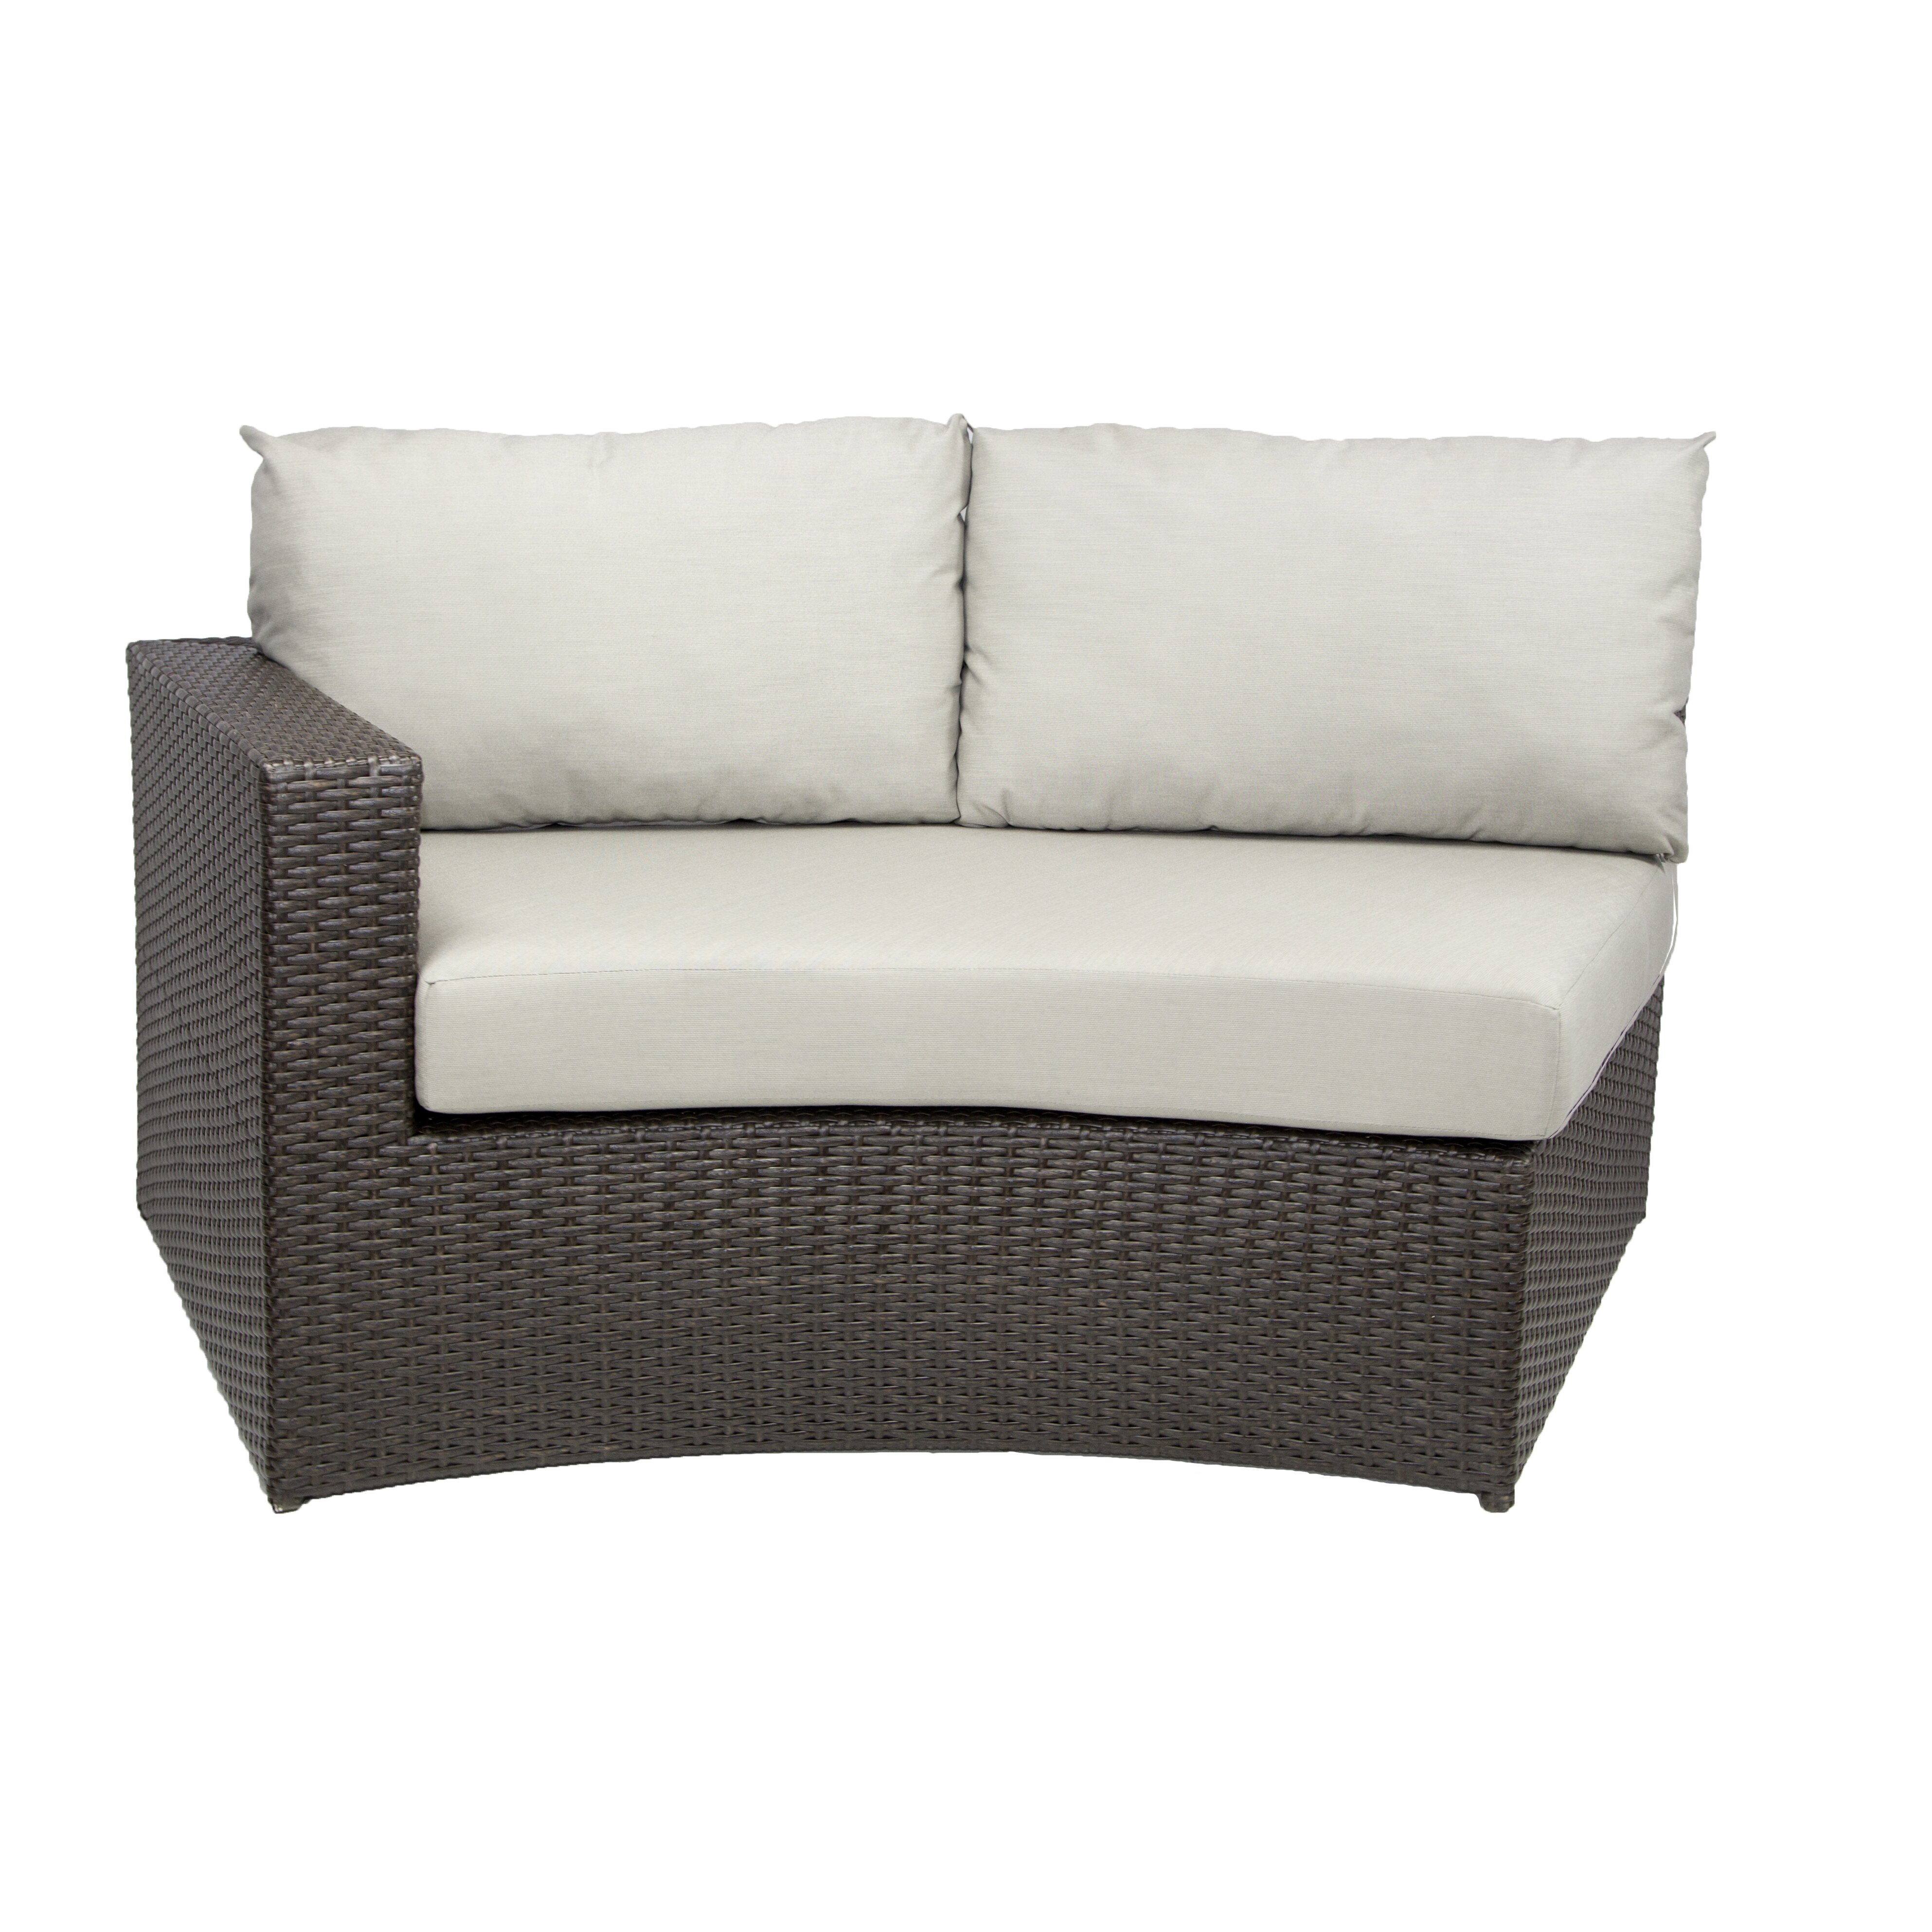 Patio Heaven Vallejo Sectional with Cushions Set